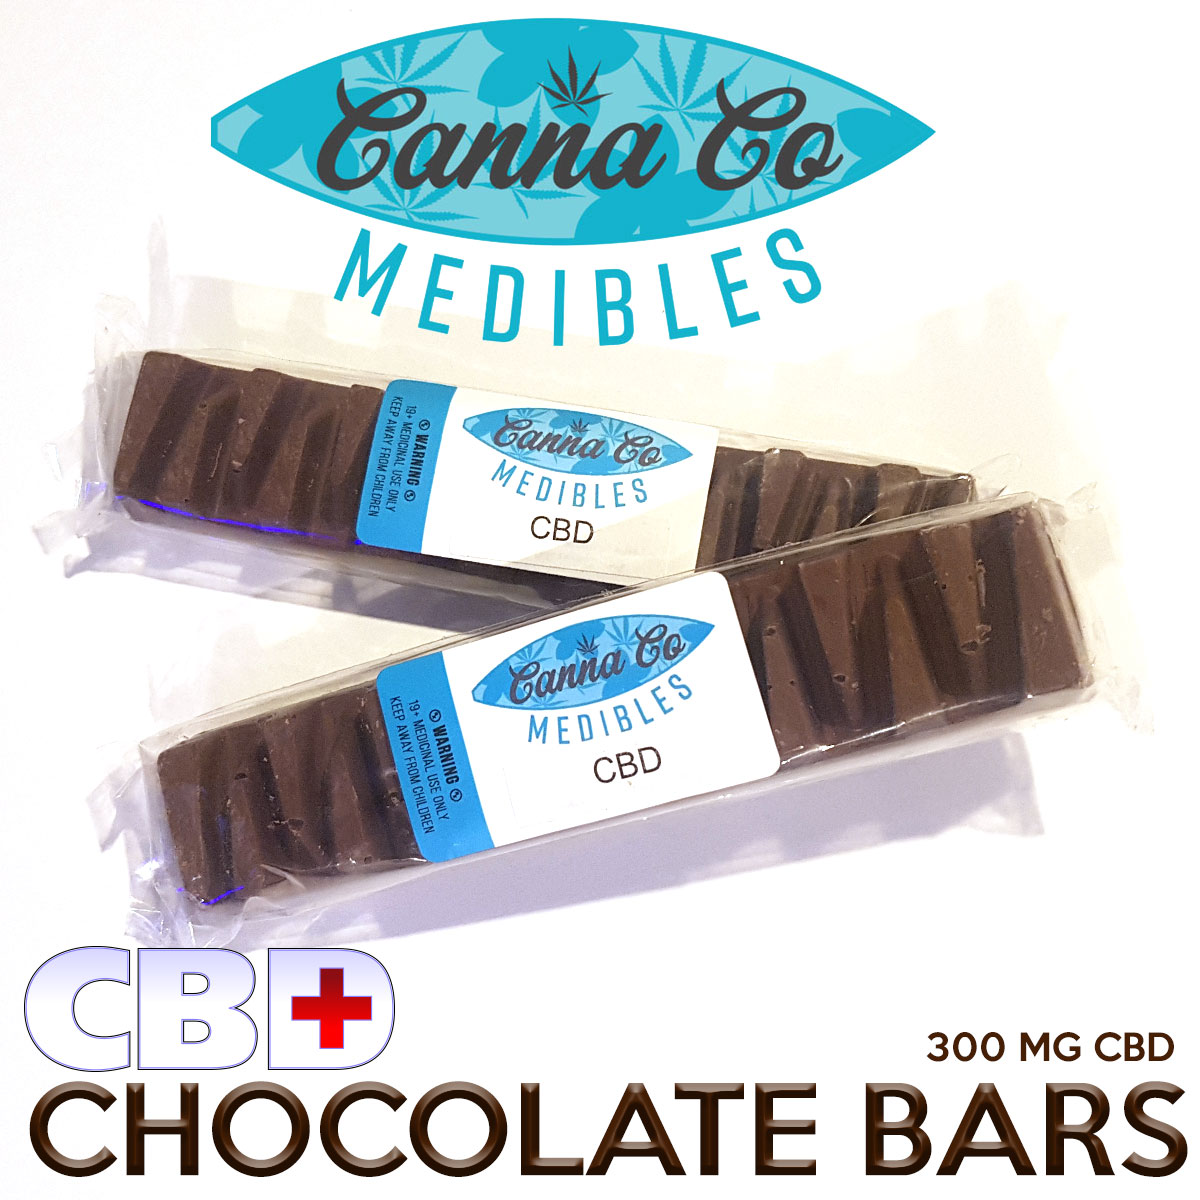 CannaCo CBD Edibles Chocolate Bars by BC Bud Store - Image © 2018 BC Bud Store. All Rights Reserved.